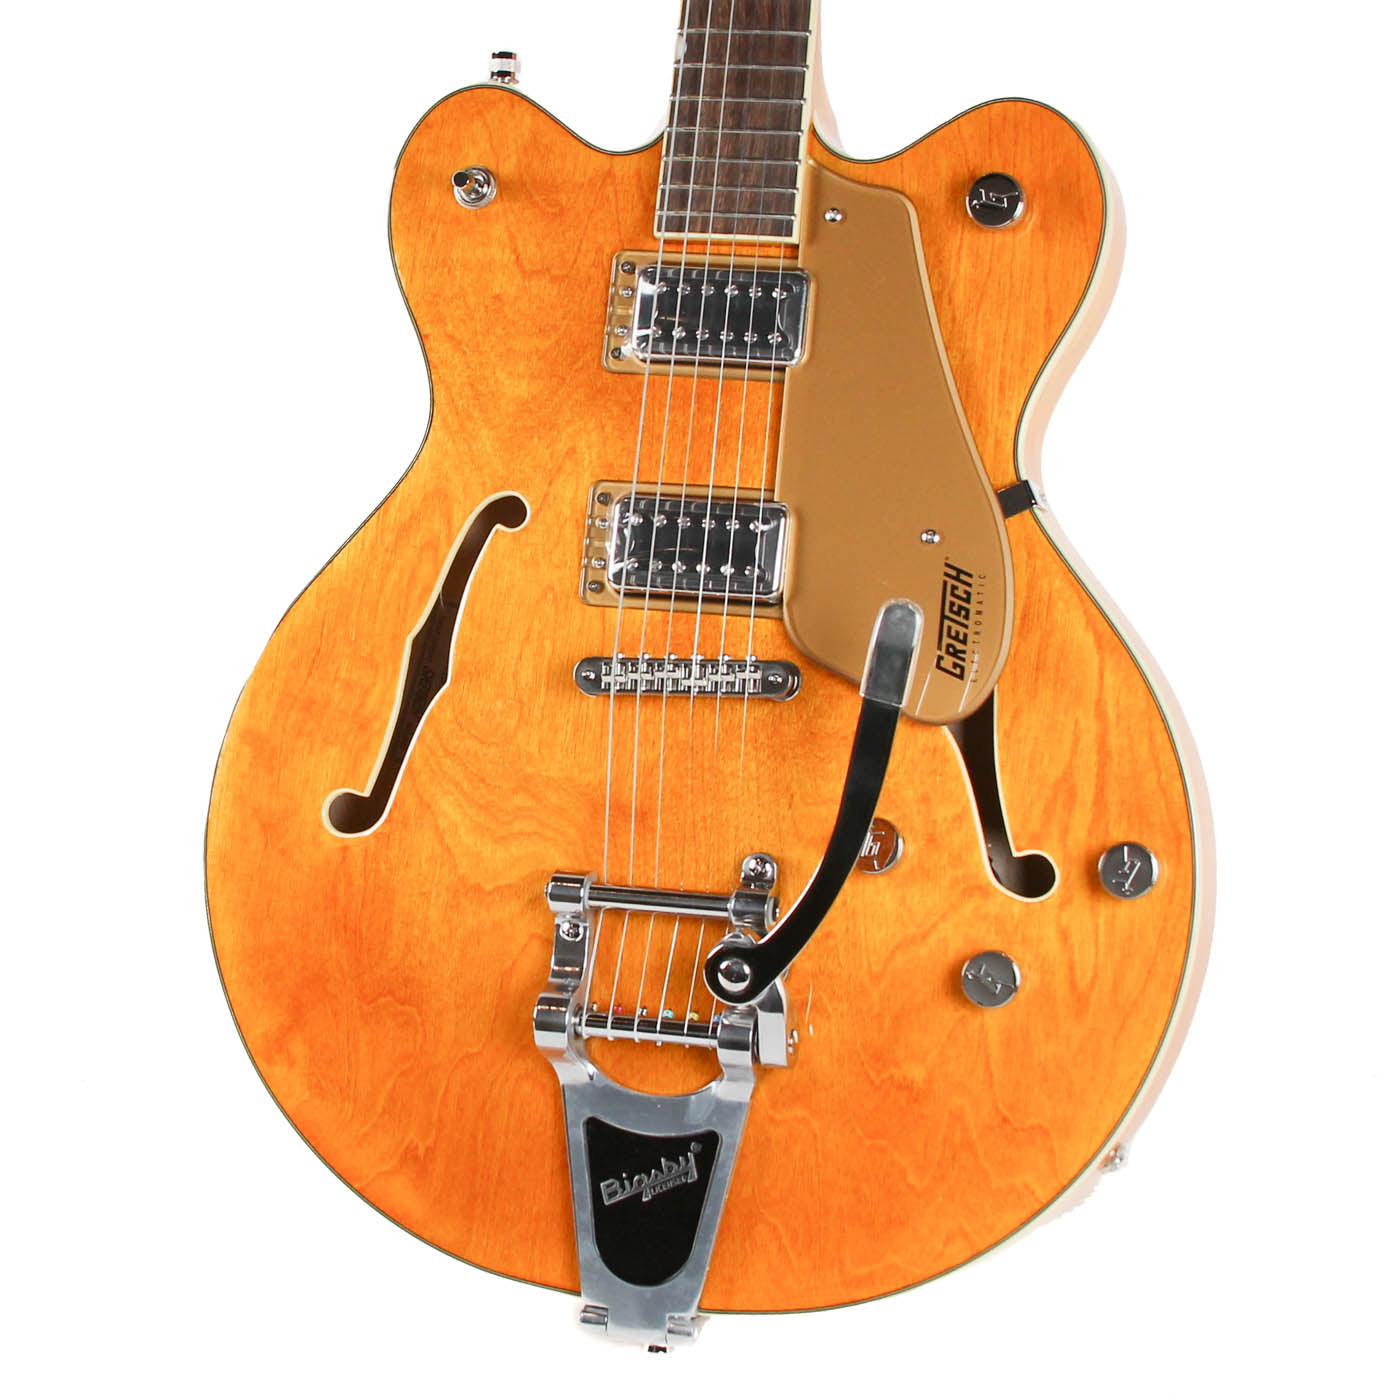 New Gretsch G5622T Center Block Electromatic Double Cut Speyside image 2